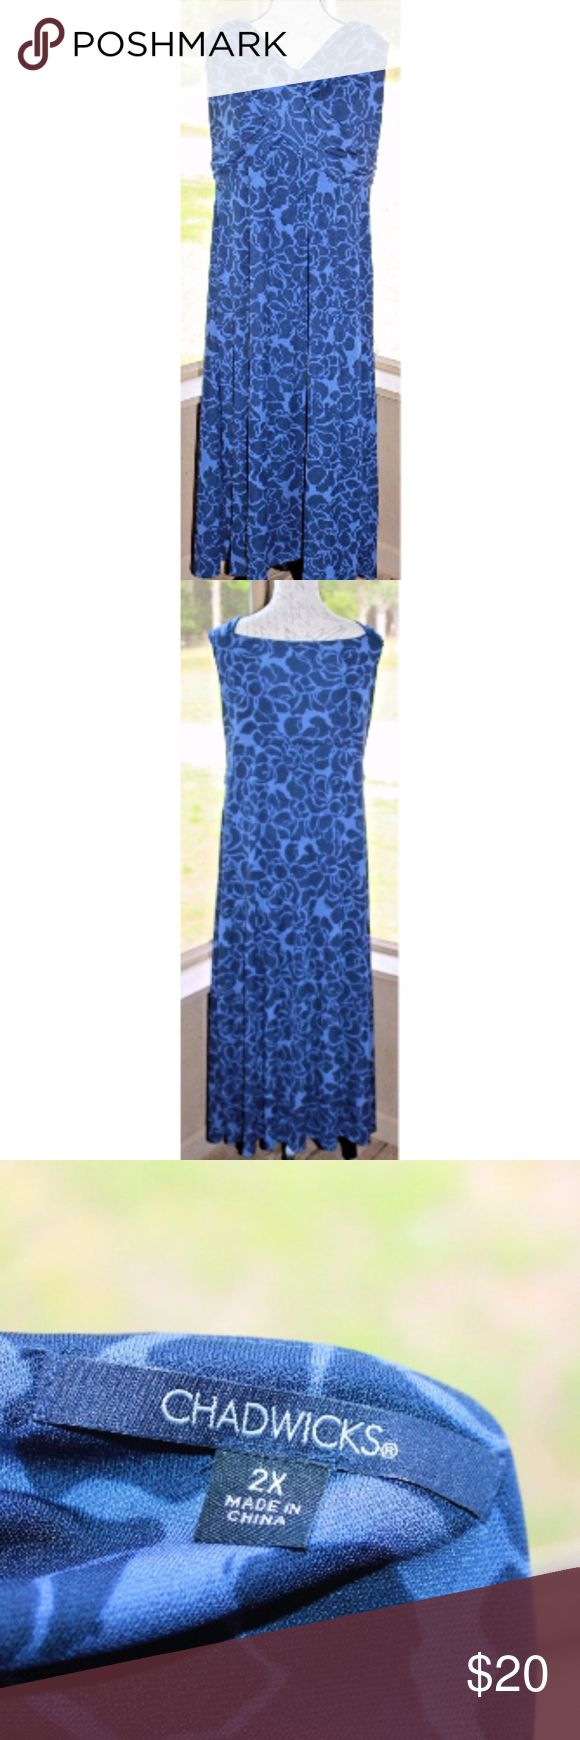 """Chadwicks Plus Size 2X Sleeveless Blue Maxi Dress Chadwicks Women's Plus Size 2X Sleeveless Blue Maxi Dress EUC XXL Floral   This dress is in excellent, used condition. No holes, stains, tears or smelly things!  :)  Measurements are taken while the dress is laying flat:  PIT to PIT:  23""""  Dress Length:  48""""     Non-Smoking Home Non-Pet Home Please message me with any questions  Good Luck & Happy Bidding! Chadwicks Dresses Maxi"""